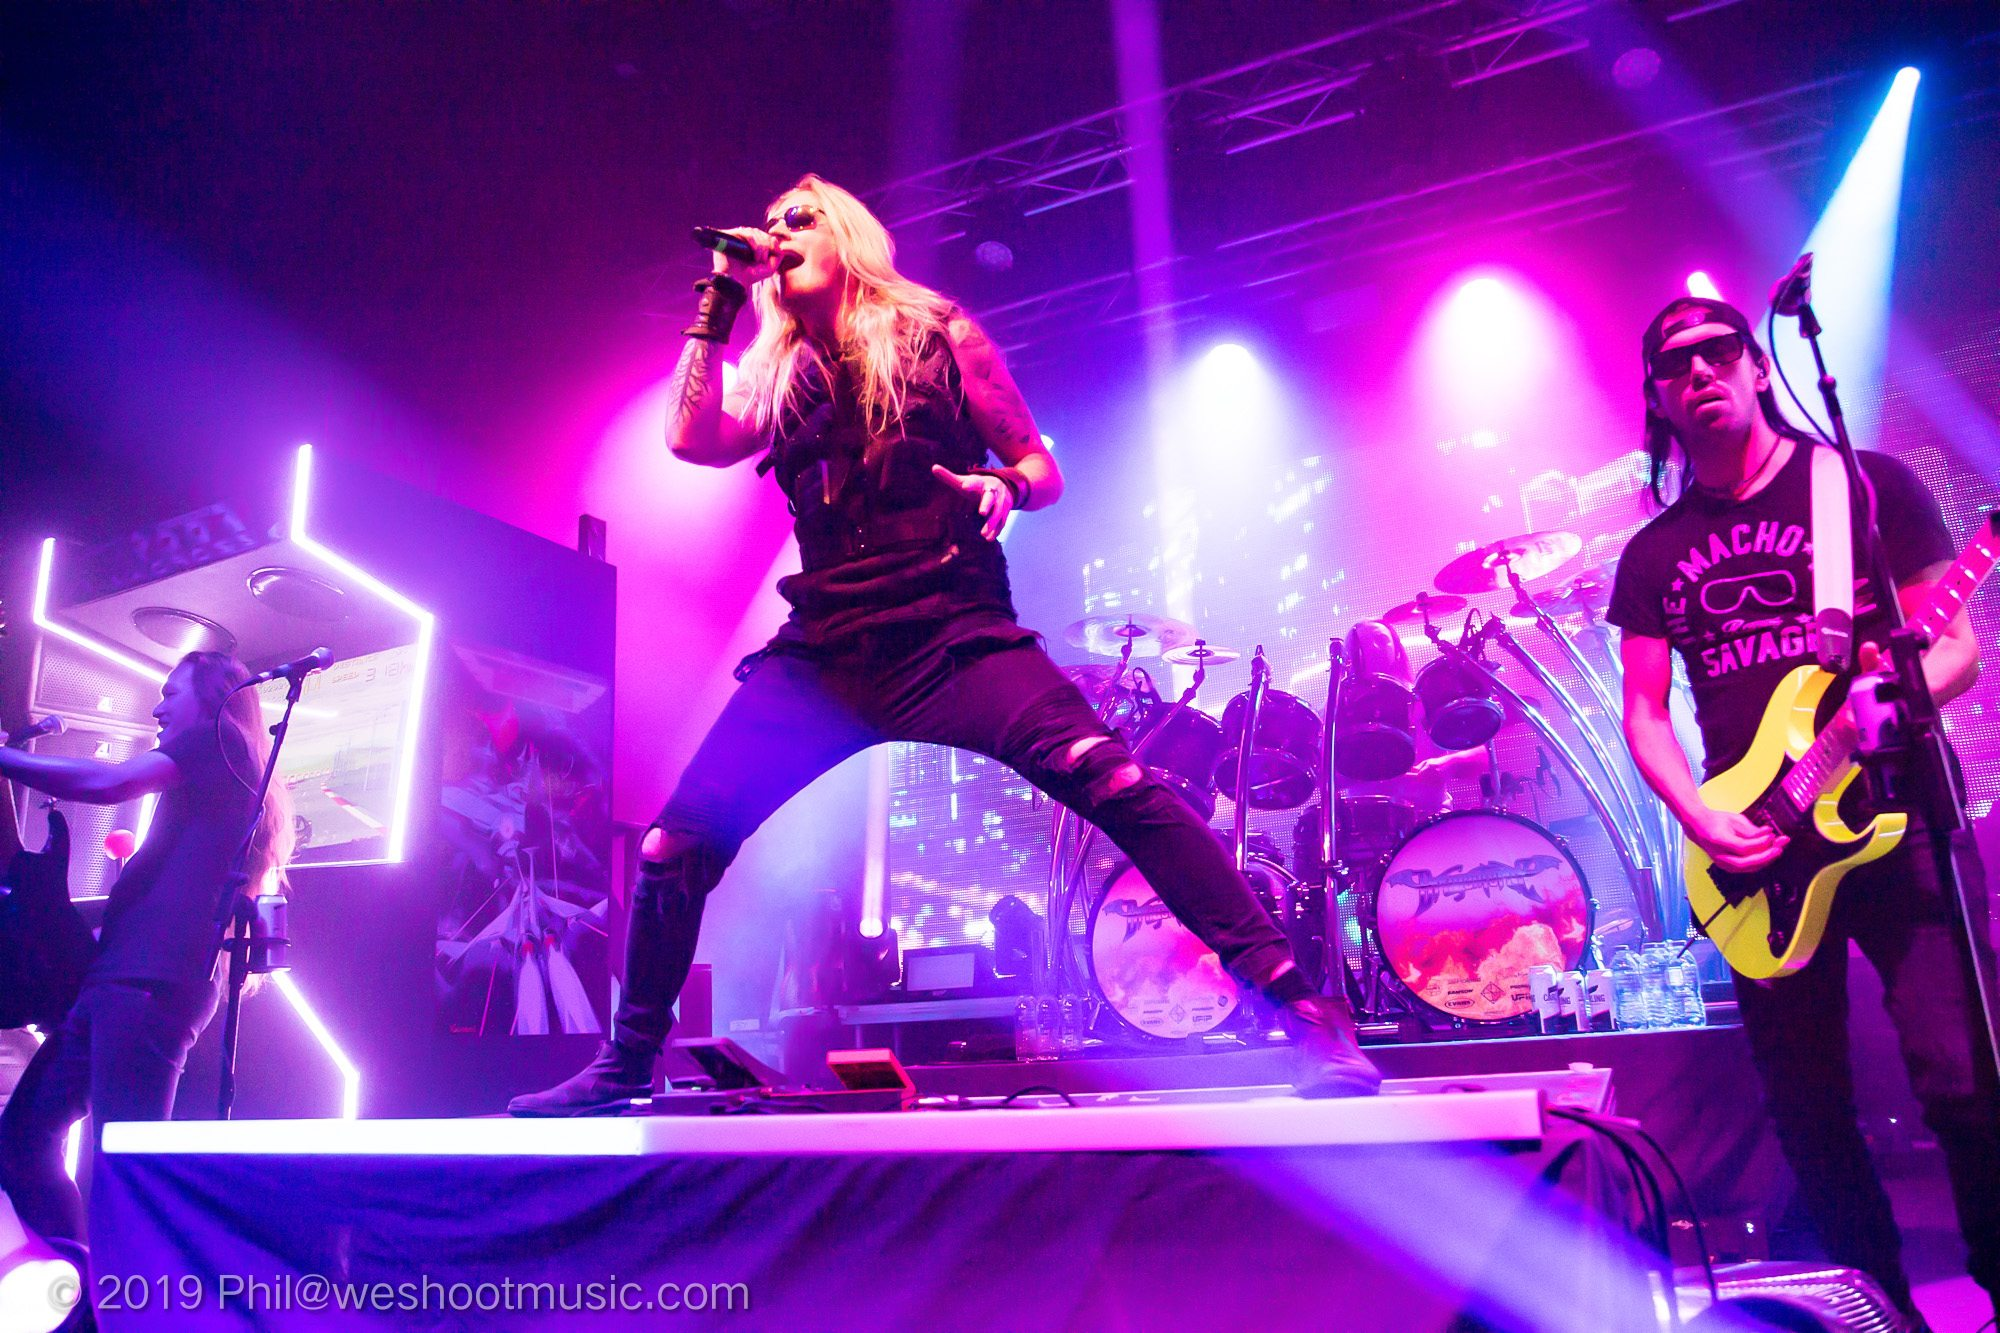 Dragonforce at Manchester Academy 2